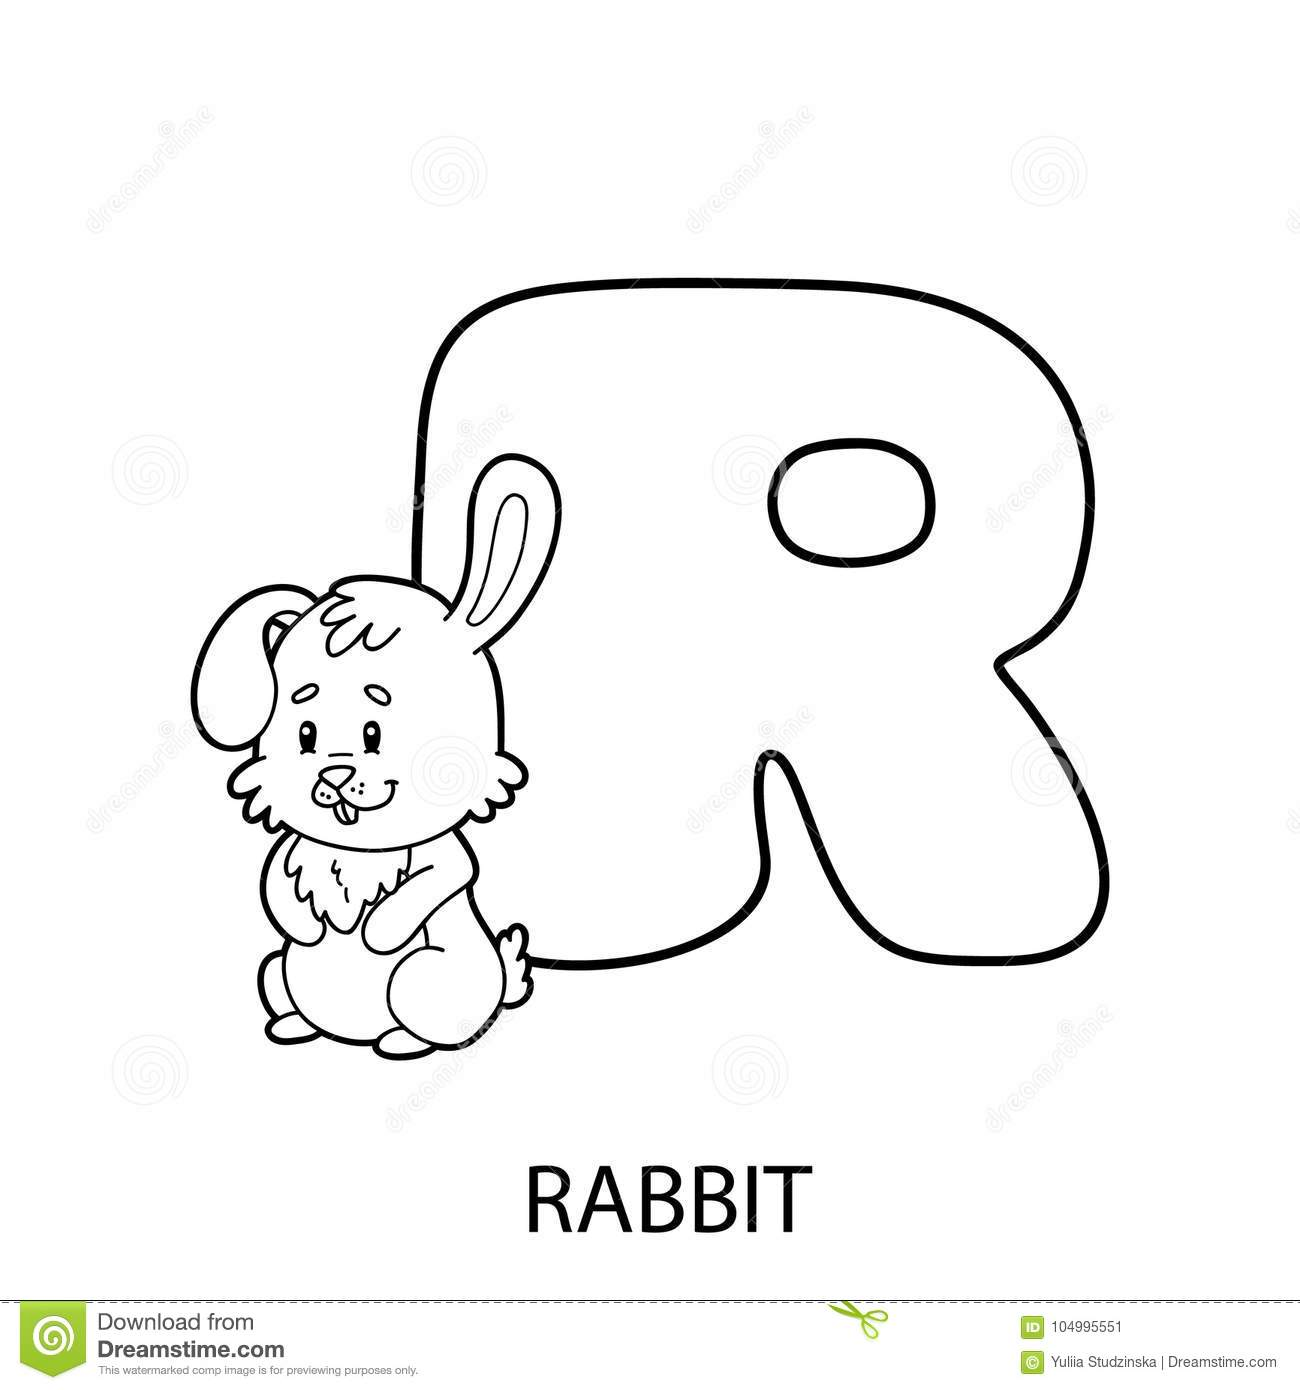 Rabbit coloring page stock vector. Illustration of drawn